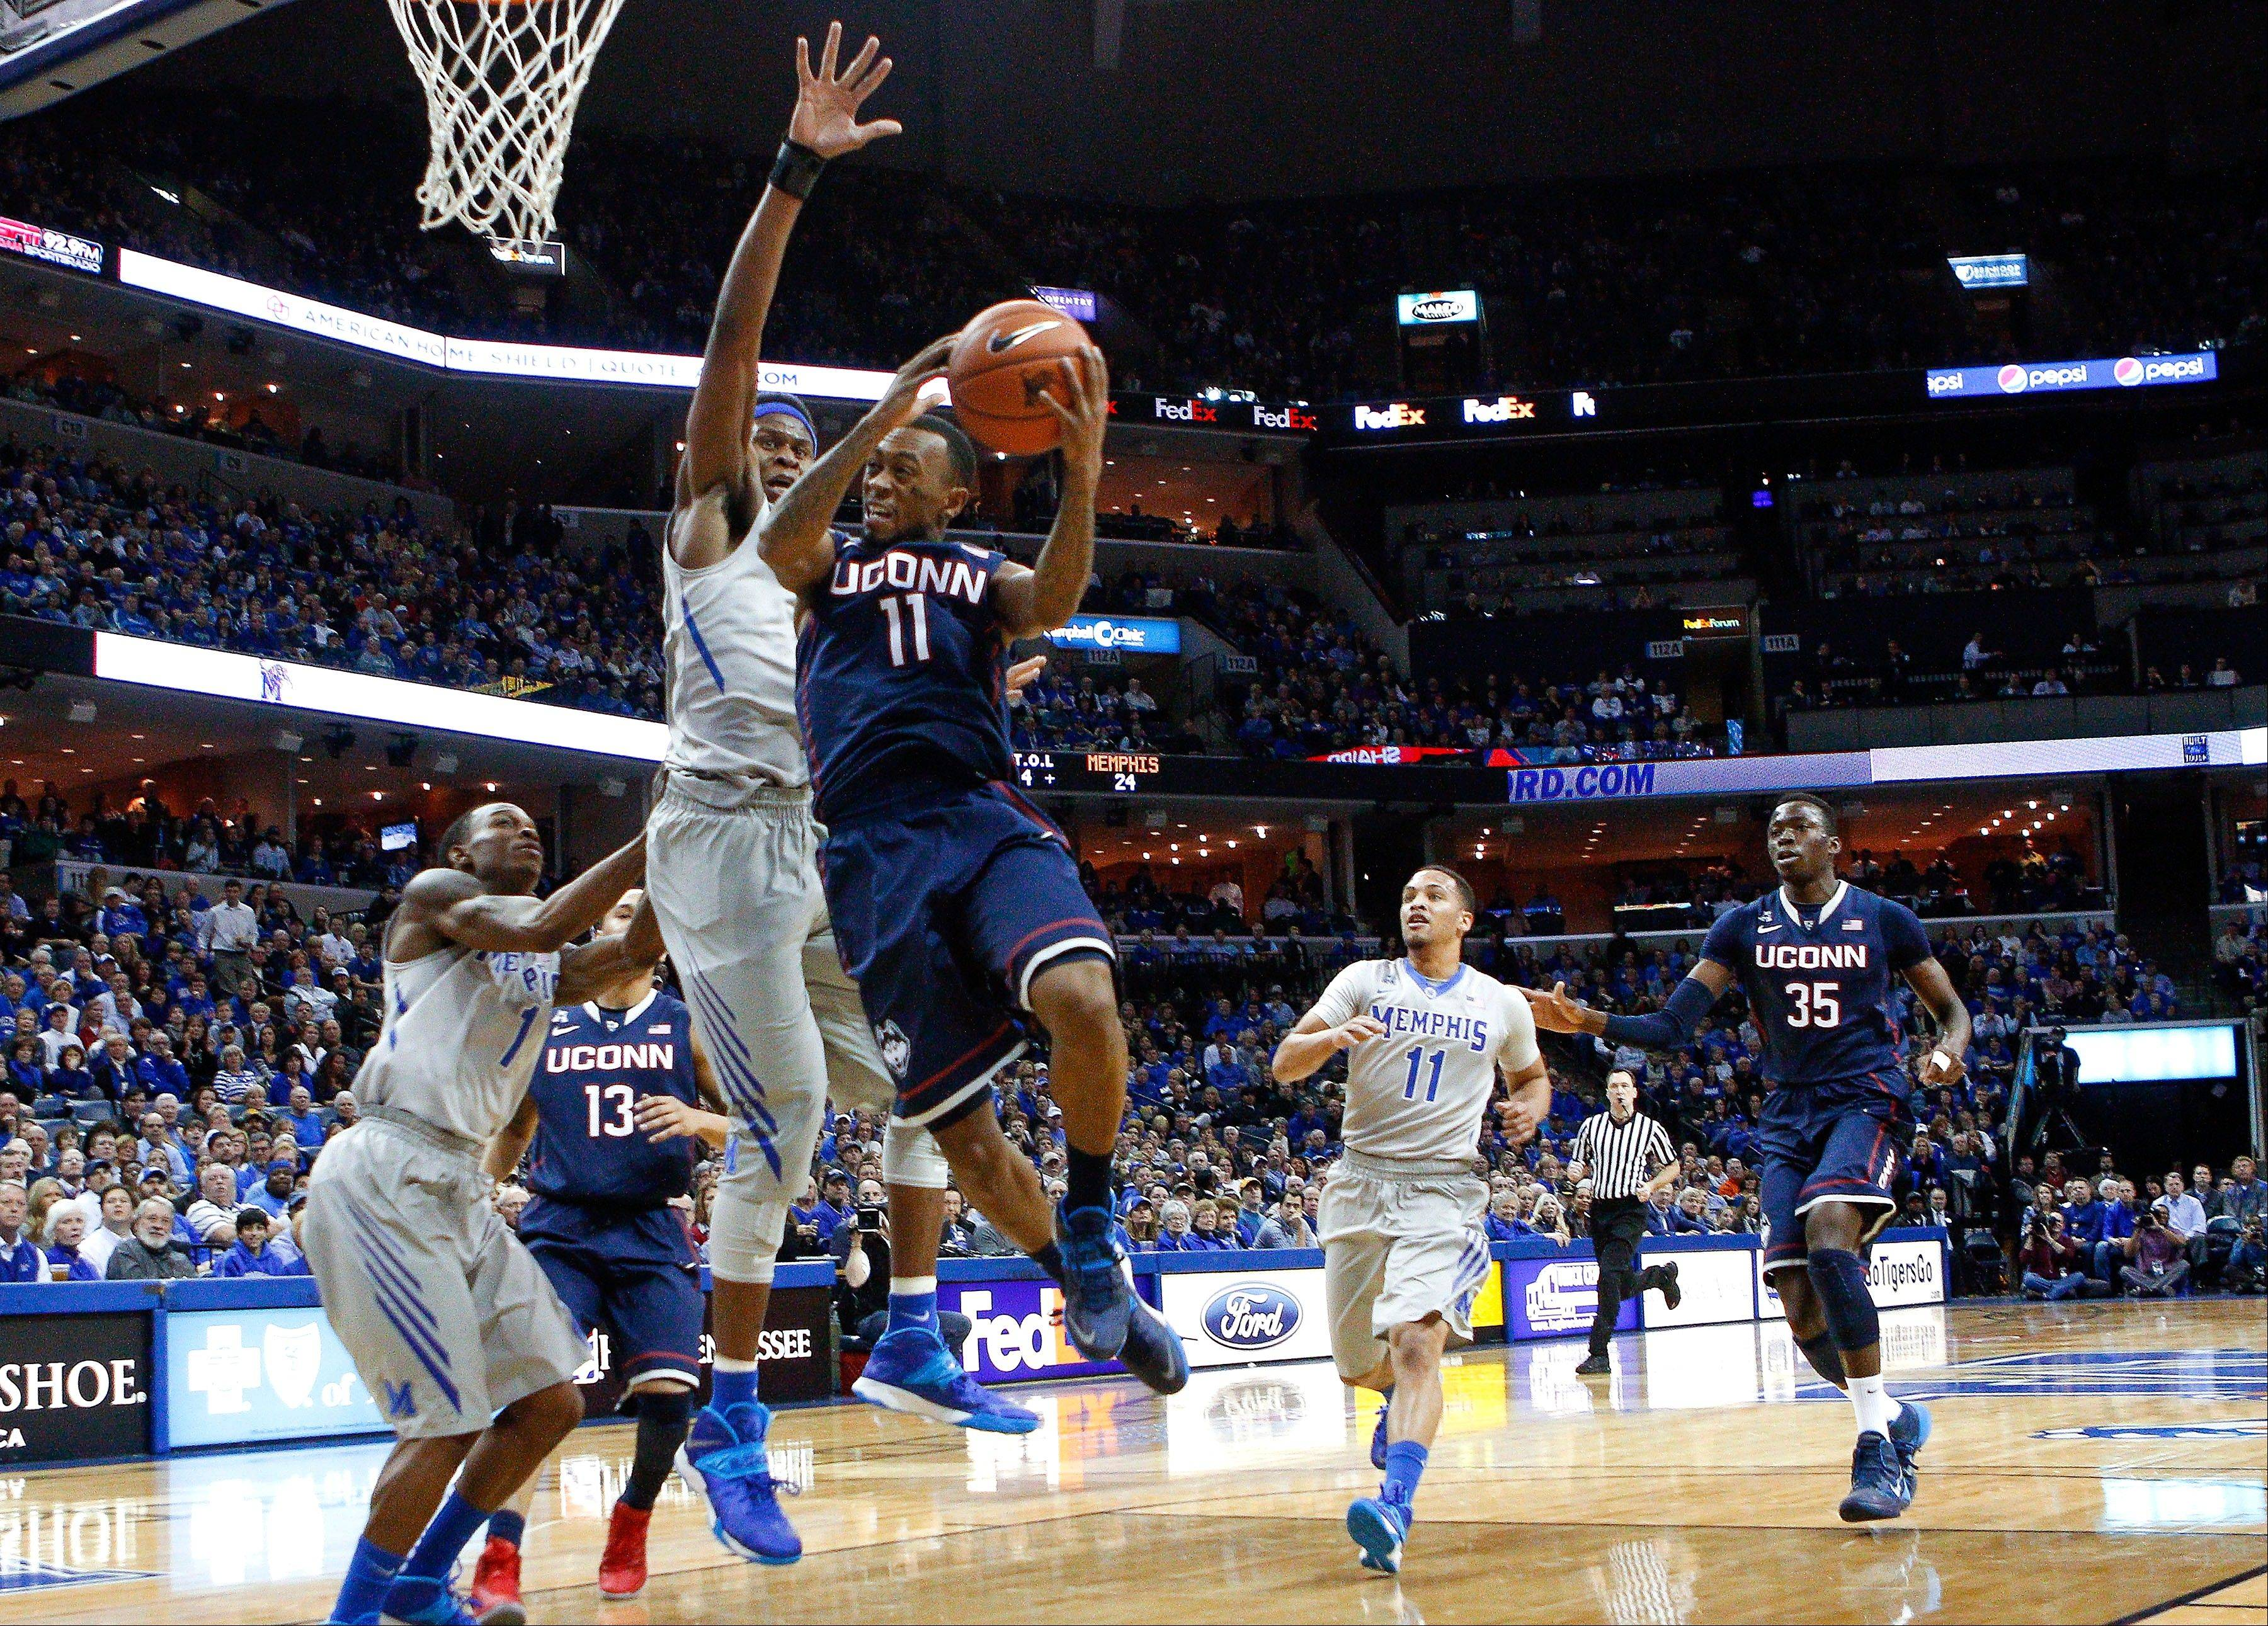 Connecticut guard Ryan Boatright, an Aurora native, goes to the basket against Memphis defenders Joe Jackson, left, and David Pellom in the first half of Thursday's game in Memphis, Tenn.